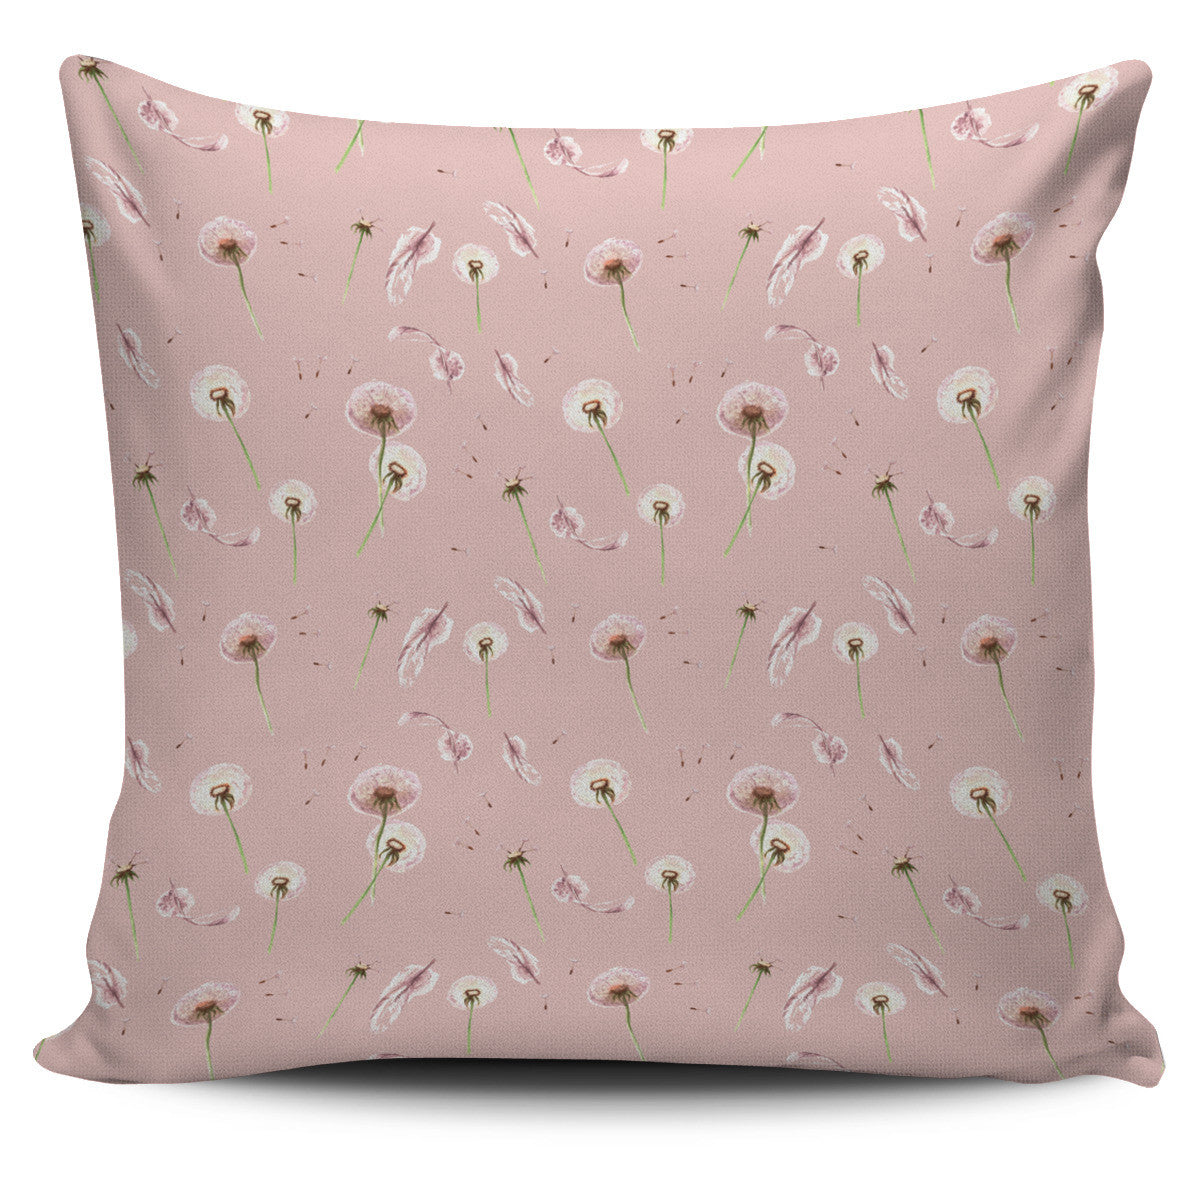 Dandelion Pillow Cover Light Denim Blue